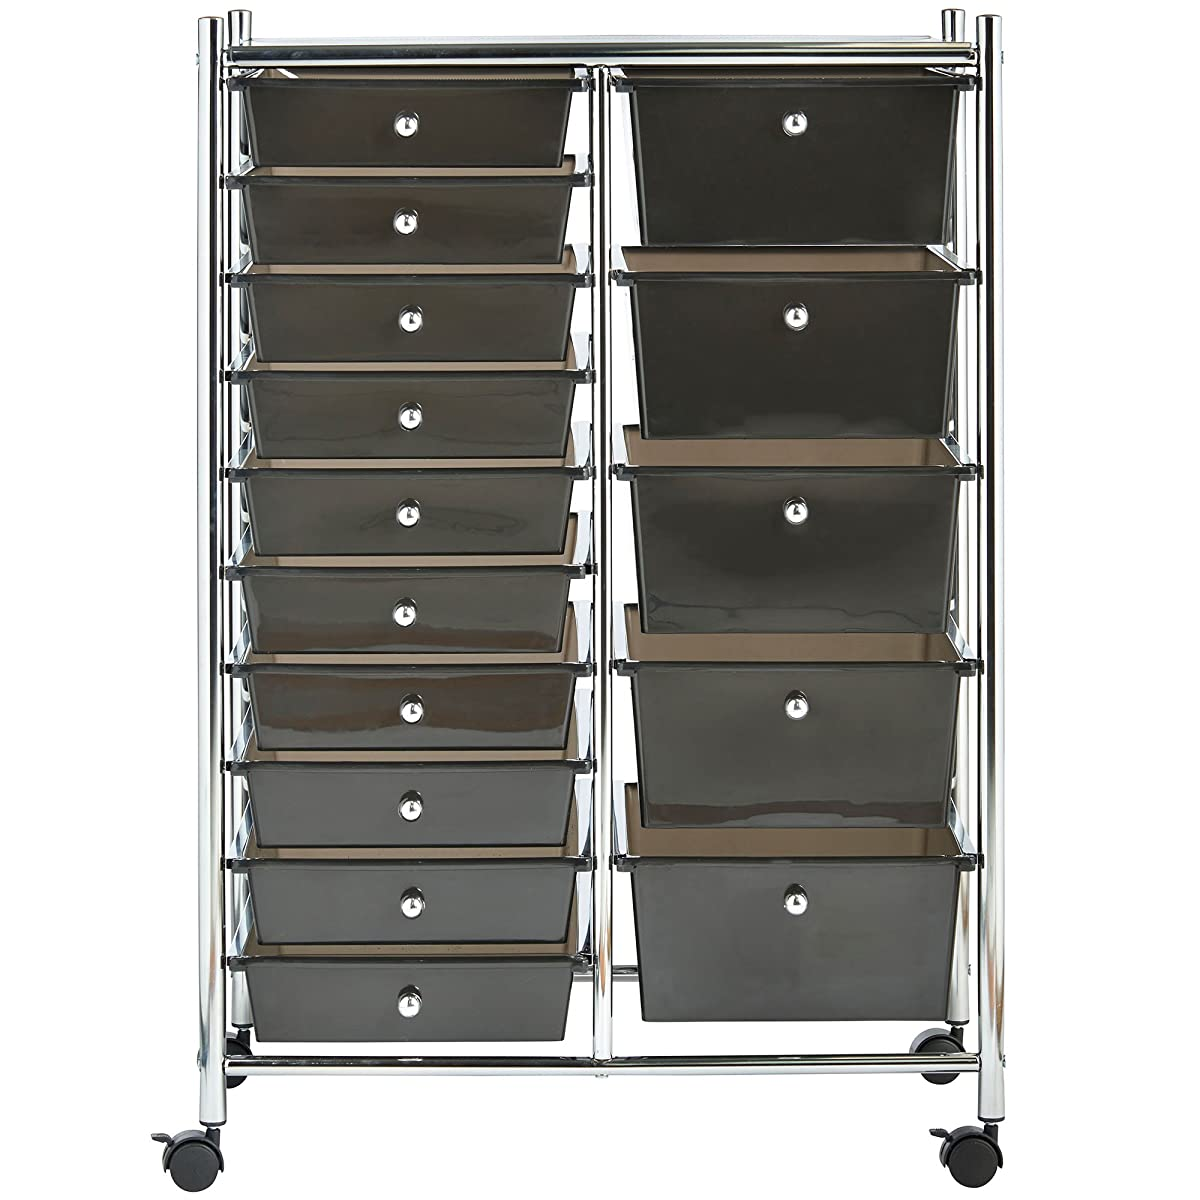 VonHaus Black 15 Drawer Organizer Cart with Rolling Wheels Multi-Purpose Utility Trolley for Home, Office, Art, Crafts and Beauty Storage